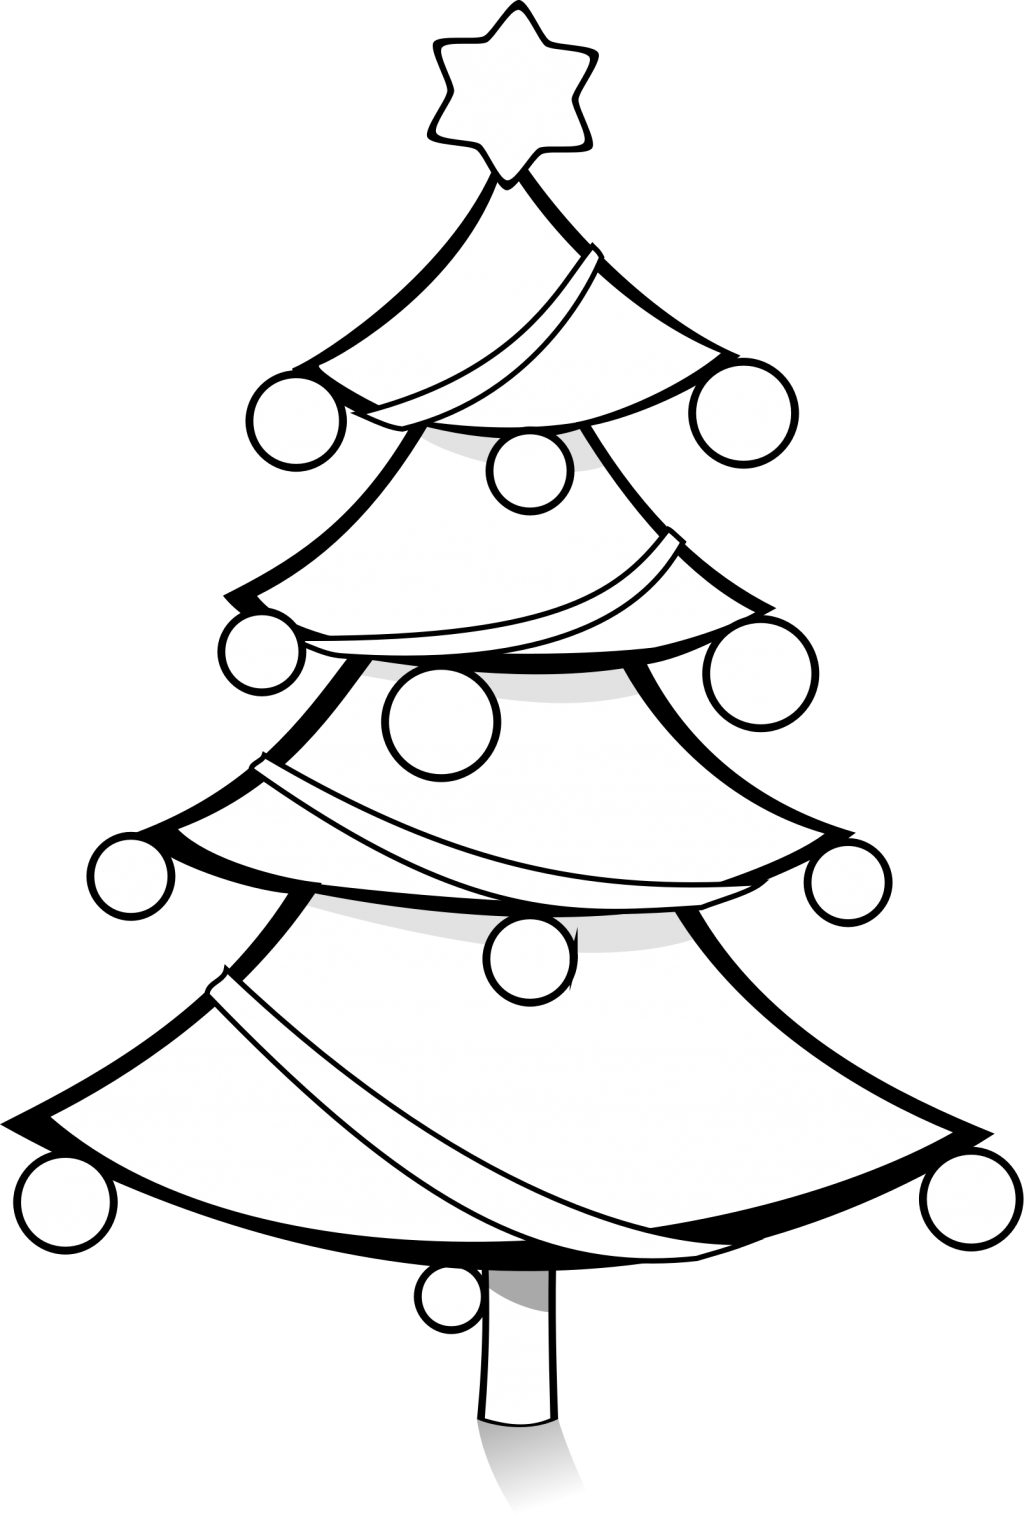 Christmas tree black clipart png download baby nursery ~ Picturesque Black And White Christmas Tree Clipart ... png download